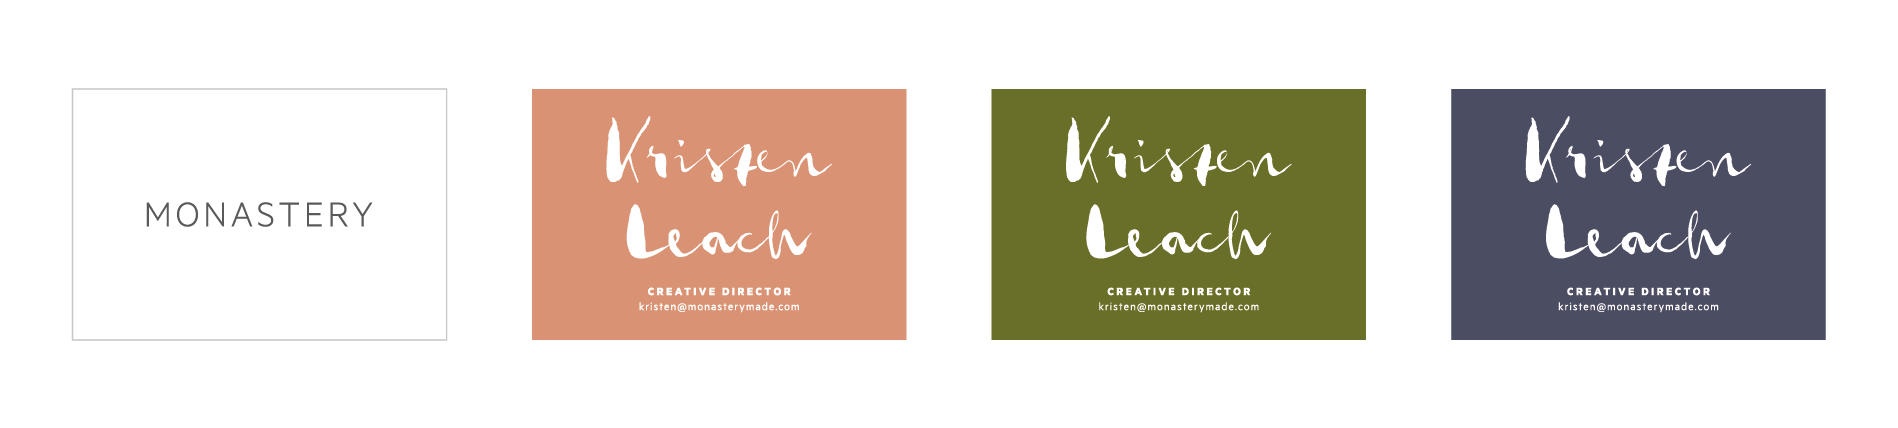 Business cards made with the three primary brand colors